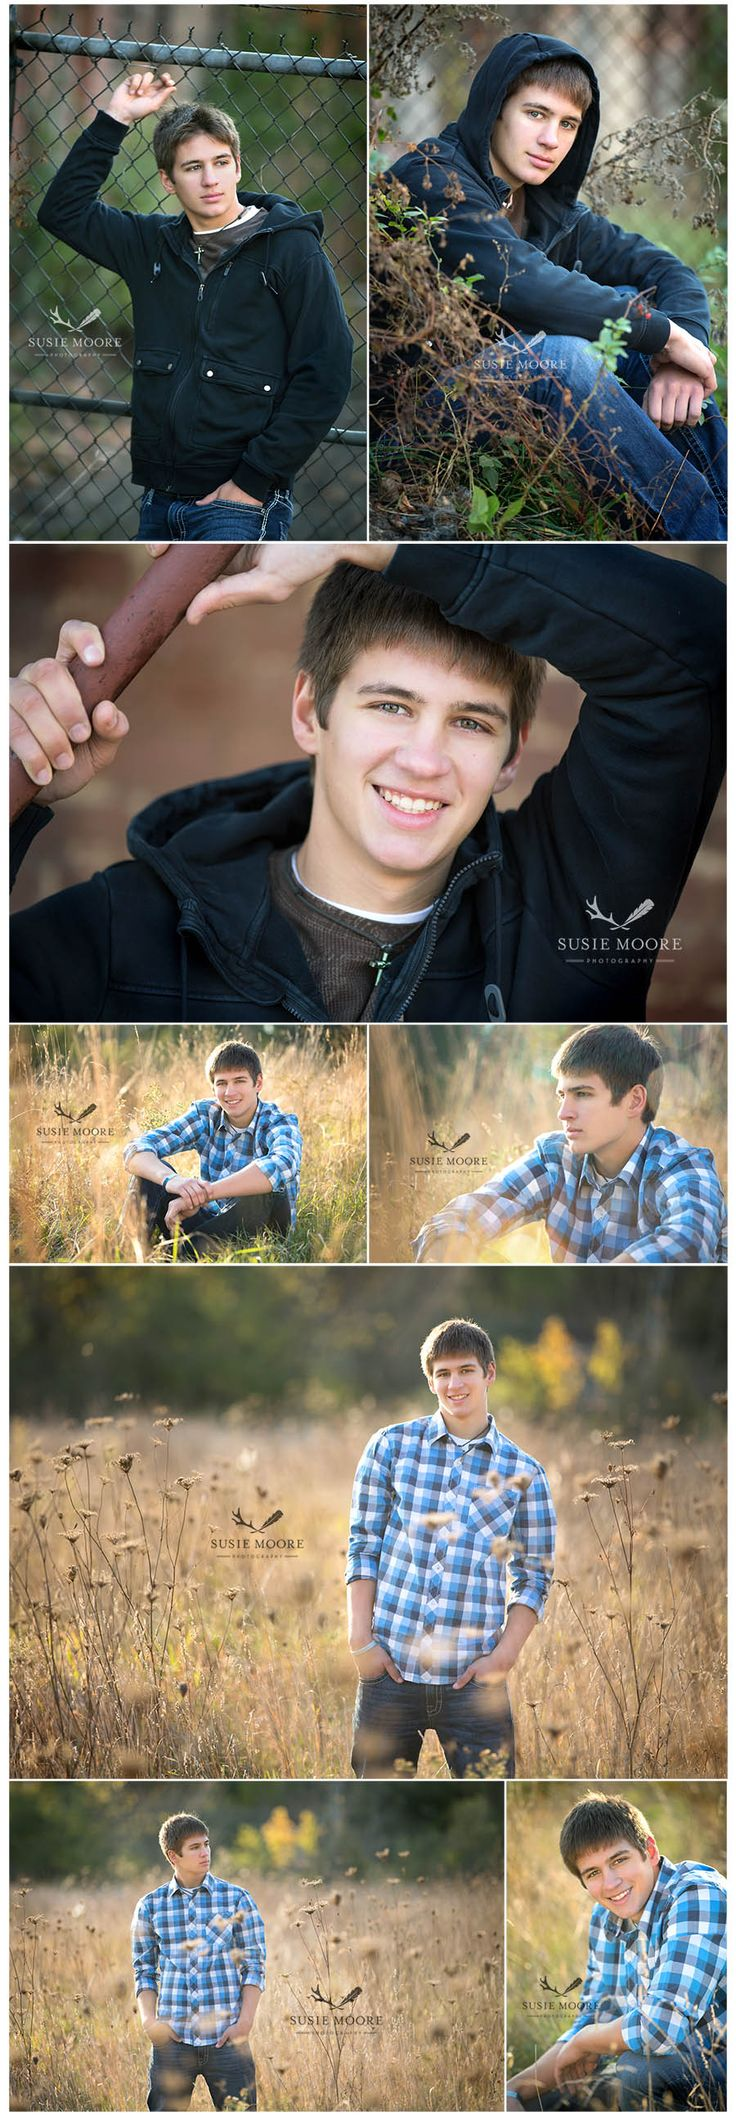 Joey | Lincoln-Way Central High School | Class of 2014 | Indianapolis Senior Photographer